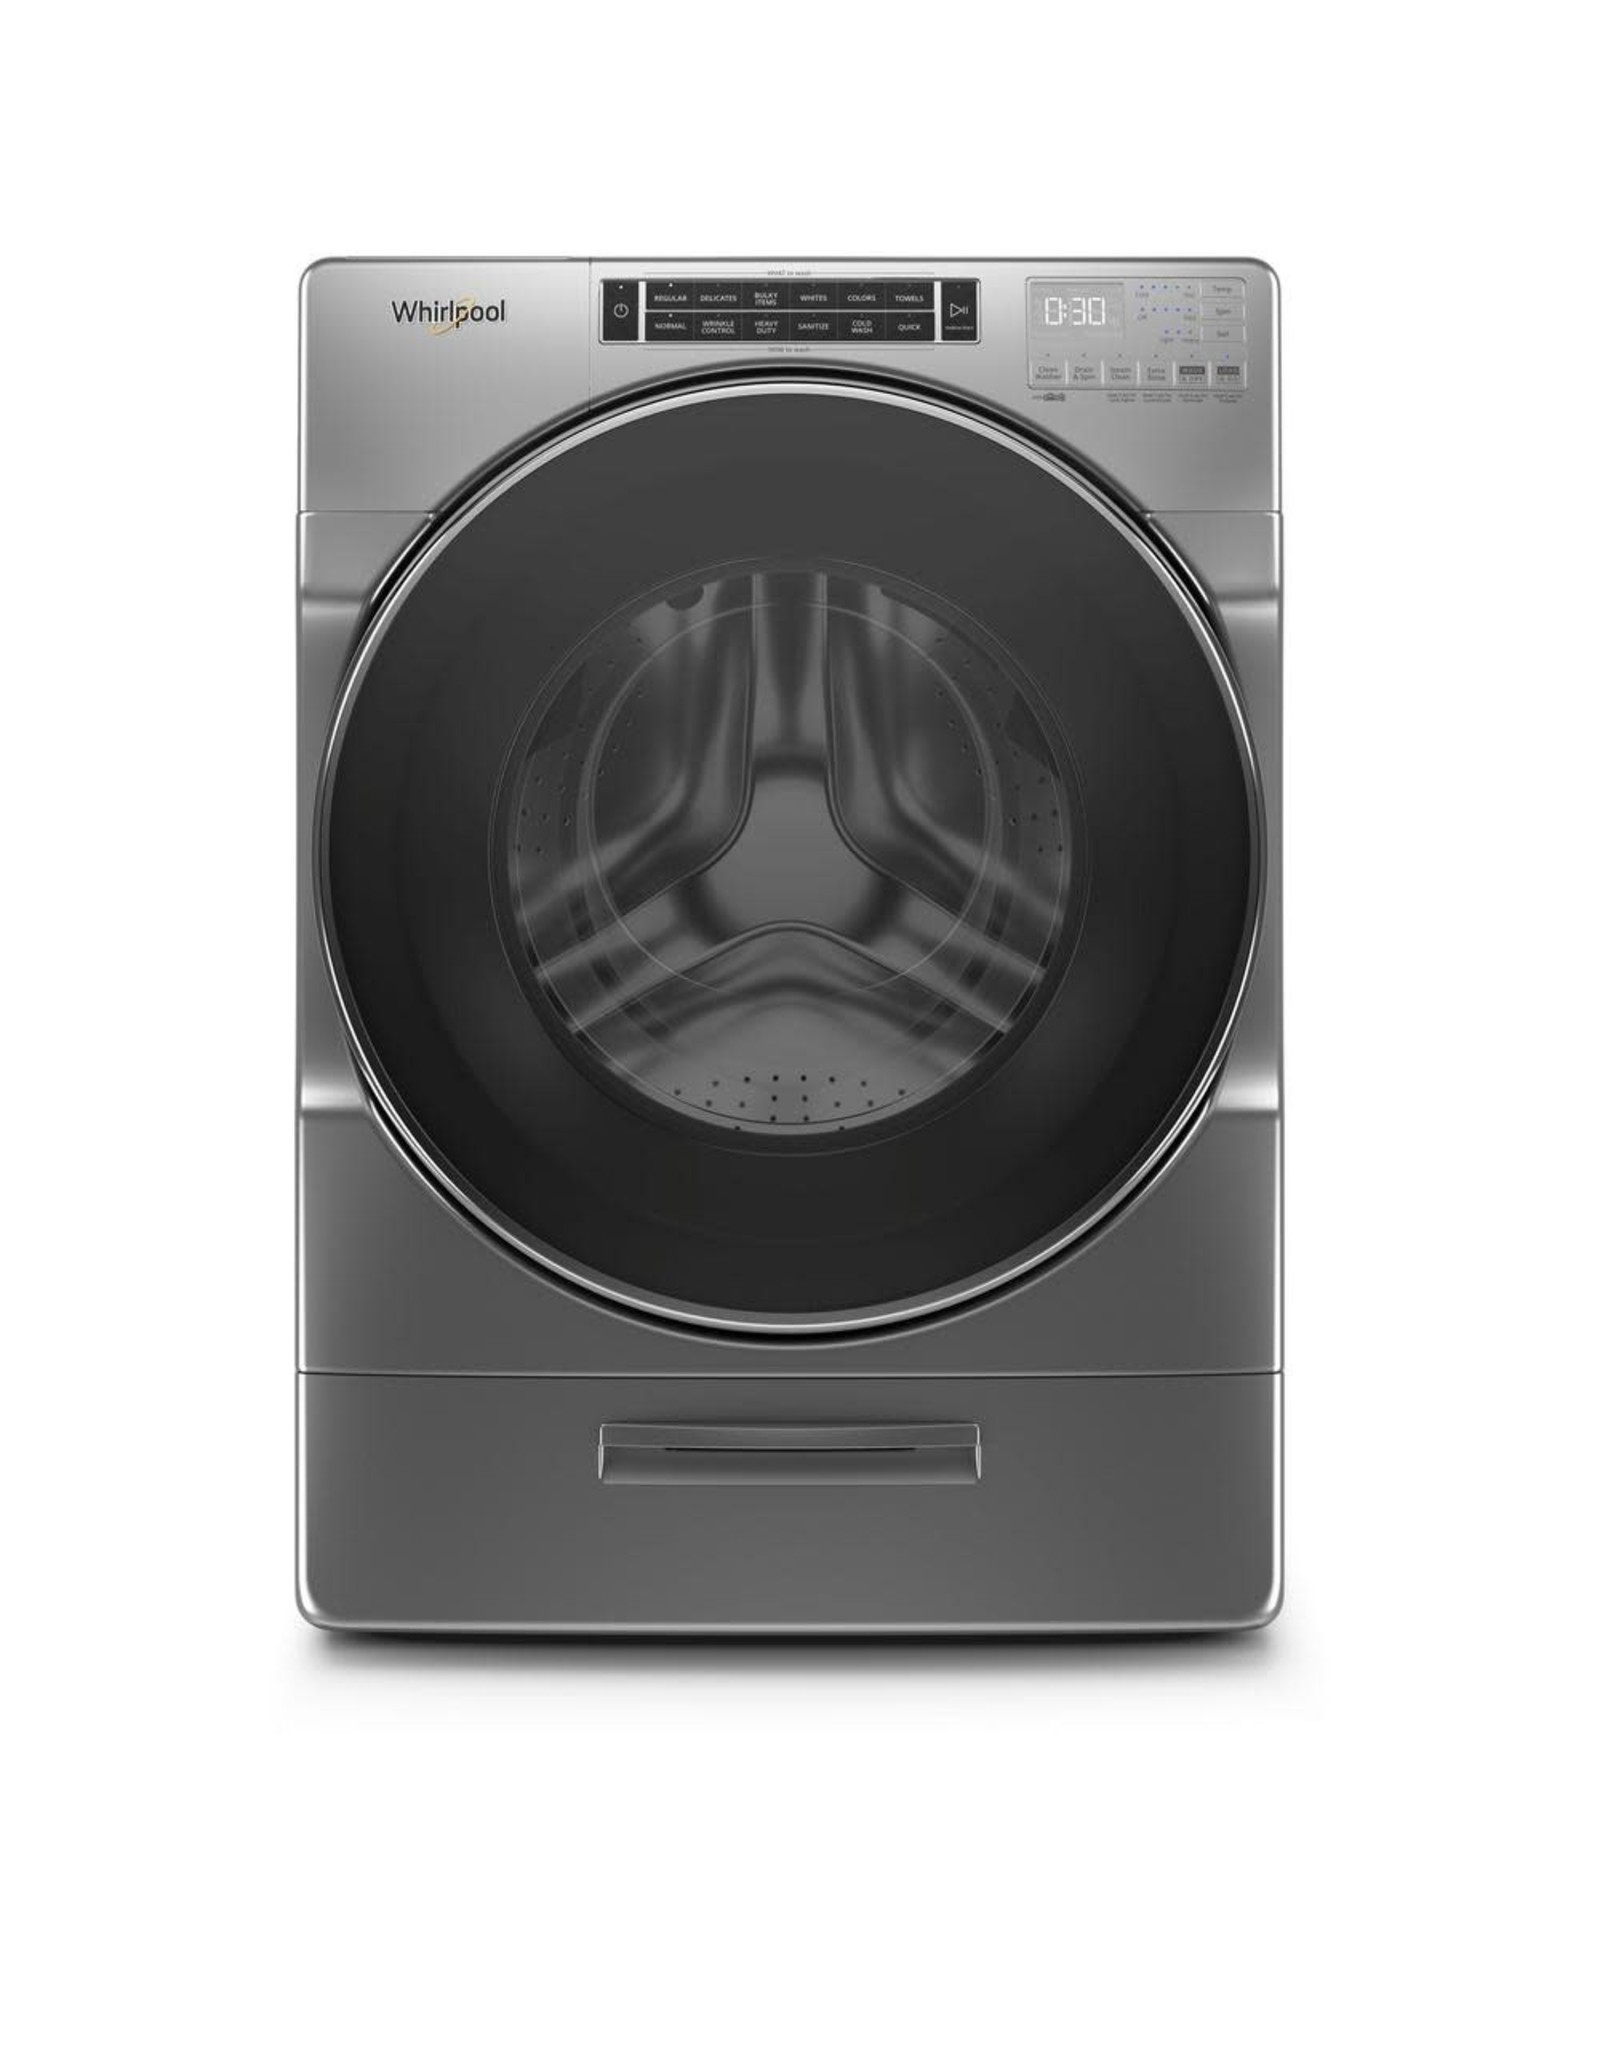 WHIRLPOOL WFW8620HC 5.0 cu. ft. High Efficiency Chrome Shadow Front Load Washing Machine with Load & Go XL Dispenser, ENERGY STAR